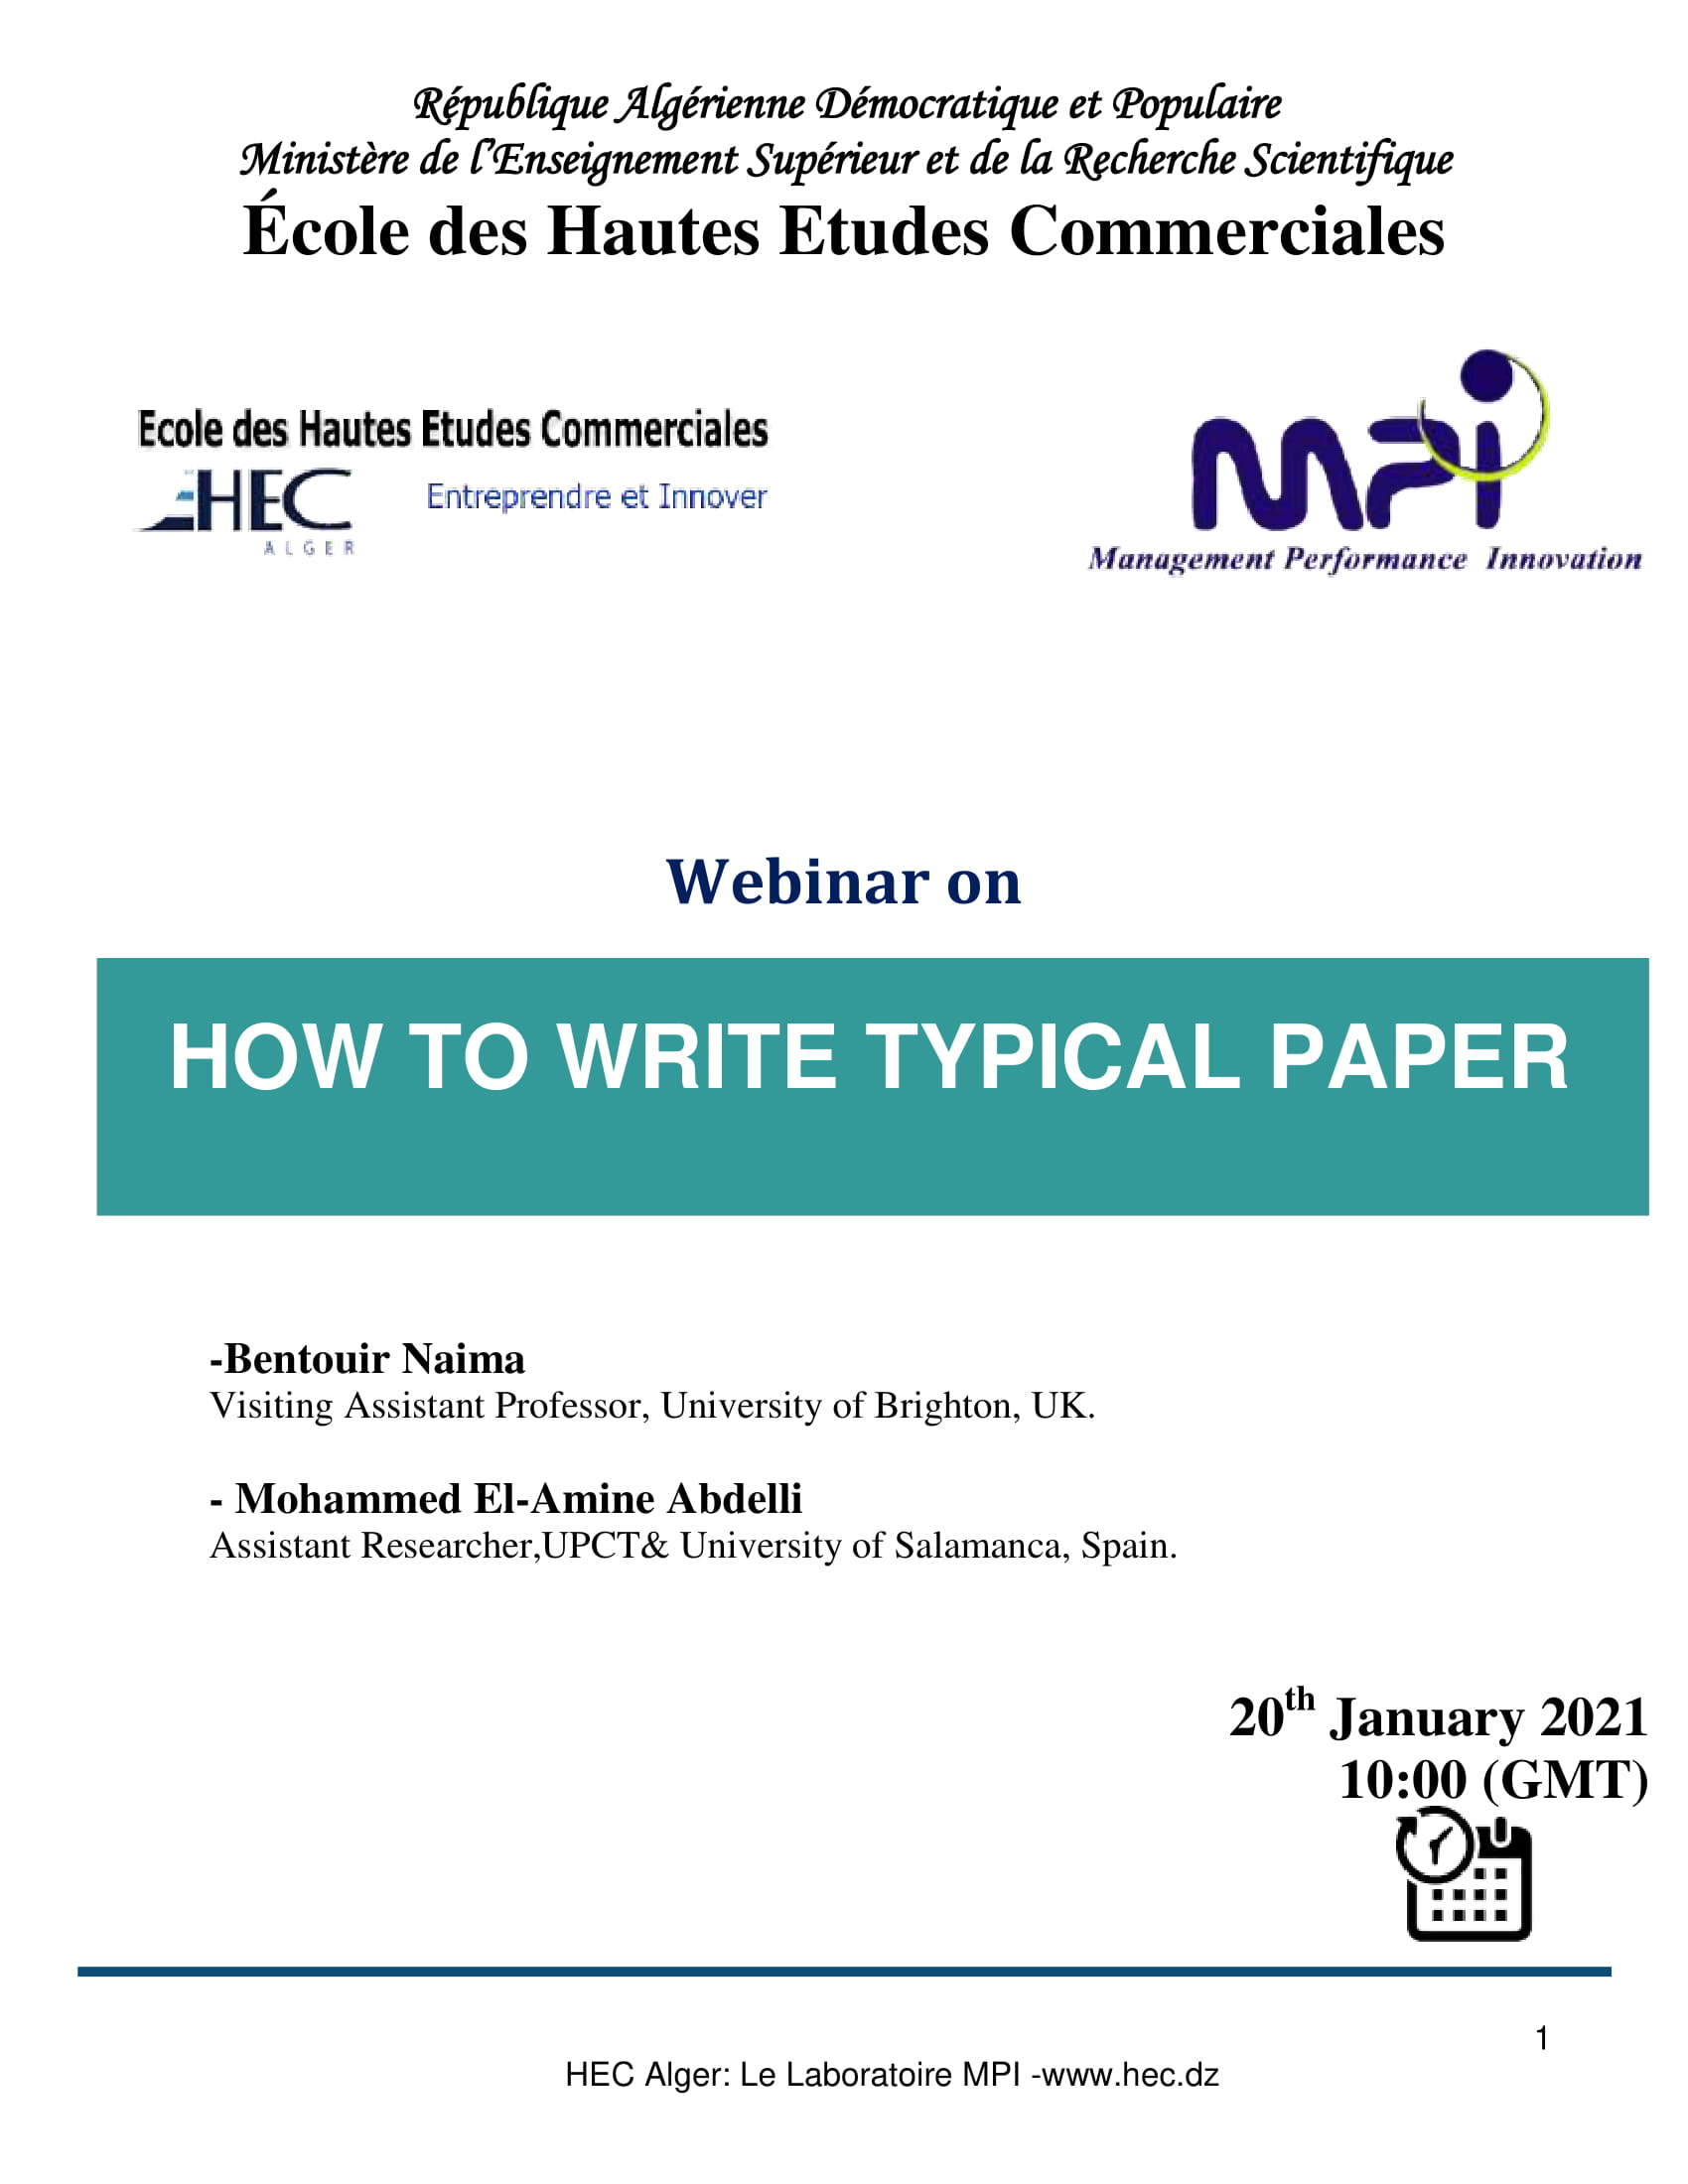 WEBINAR ON HOW WRITE TYPICAL PAPER